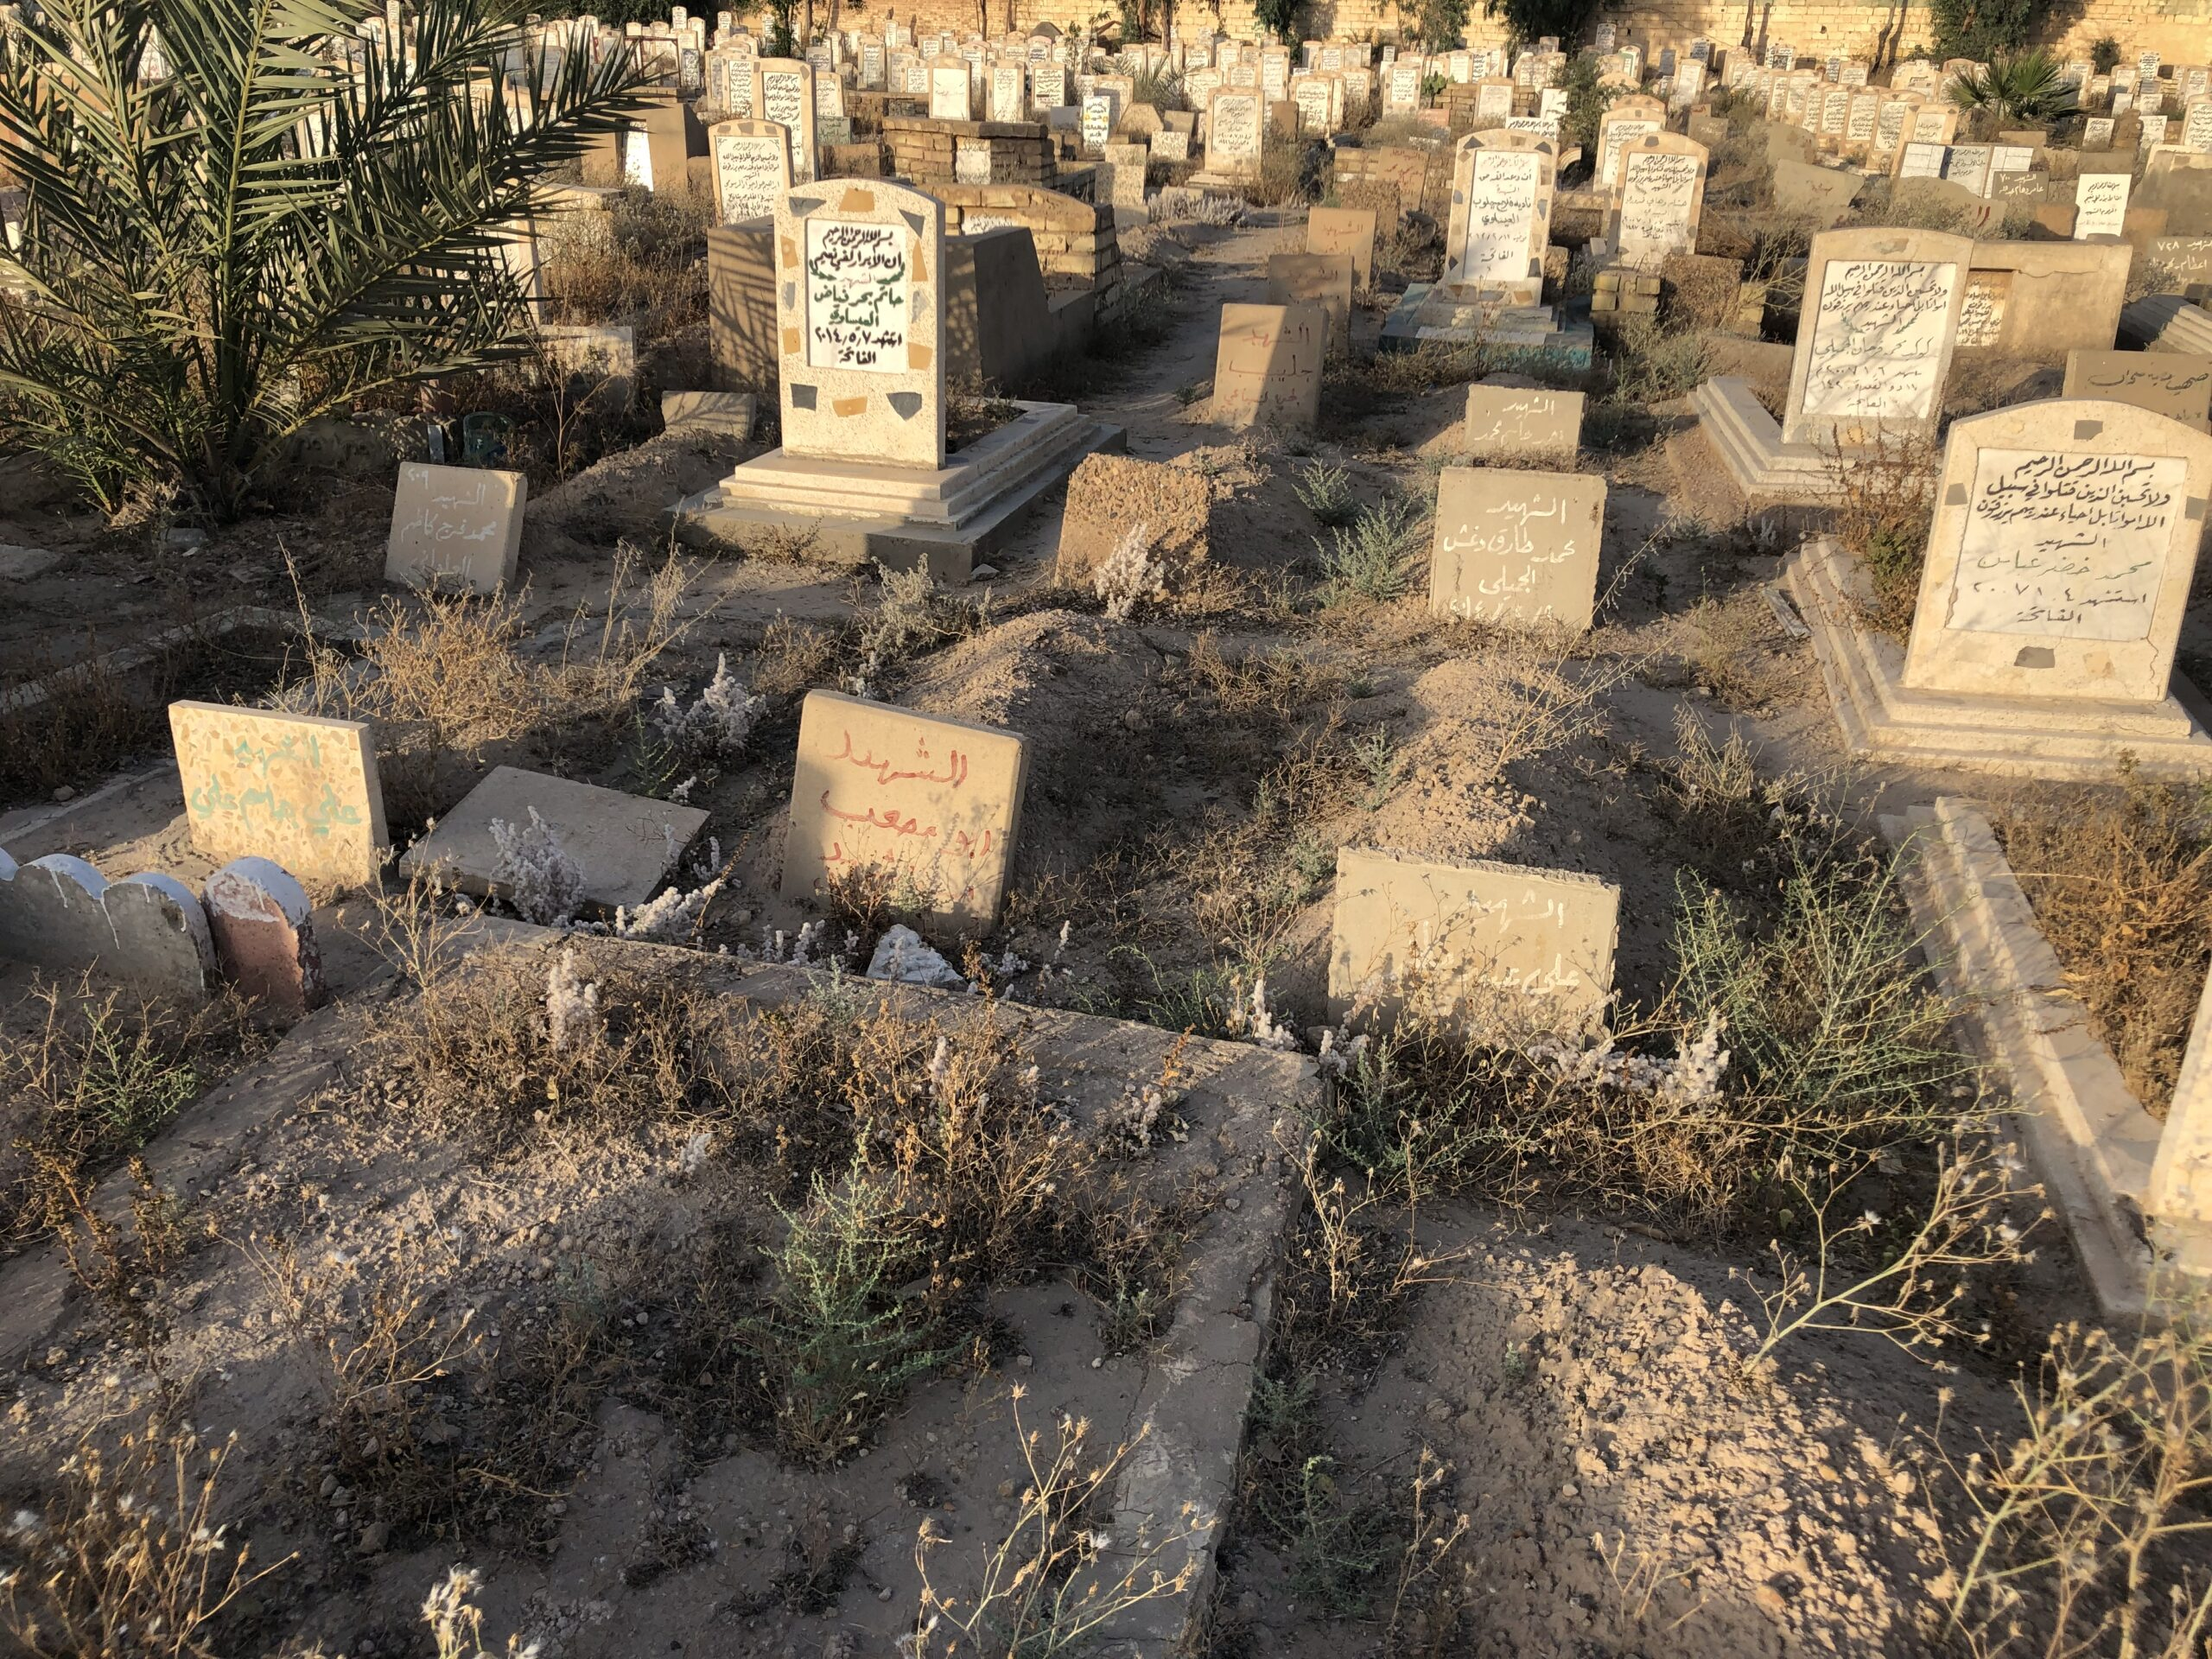 image of Martyrs Cemetery